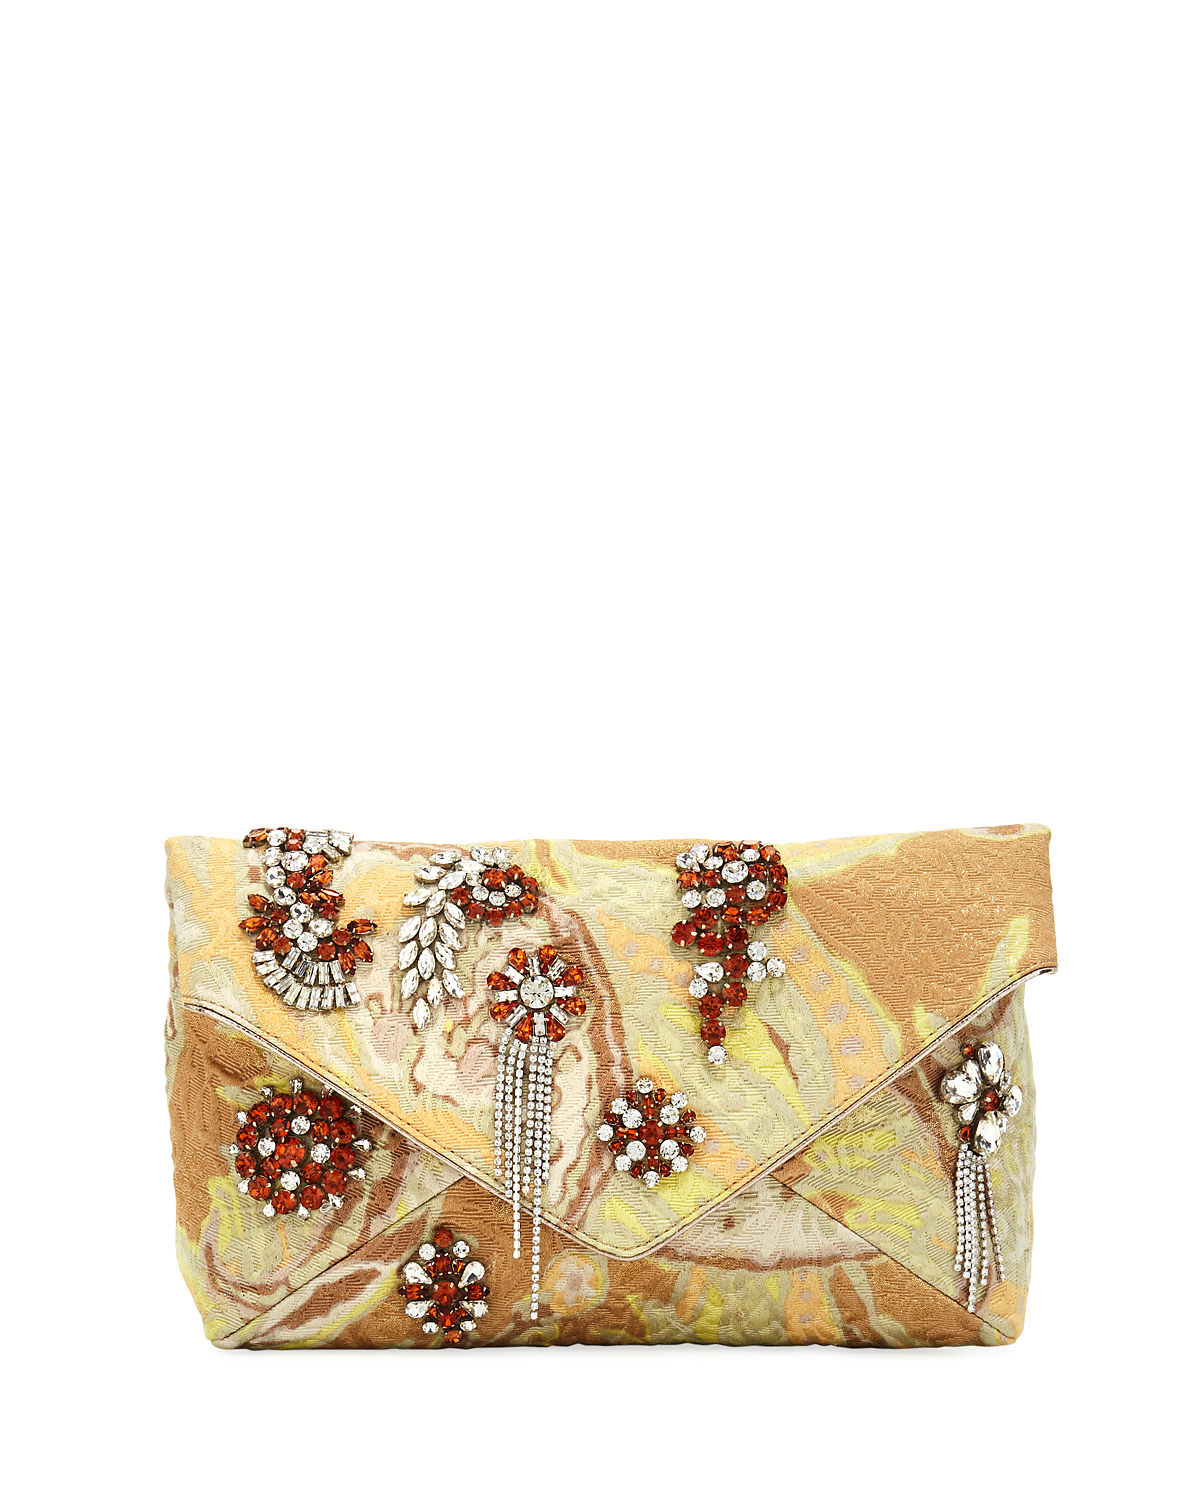 Jeweled Metallic Envelope Clutch Bag